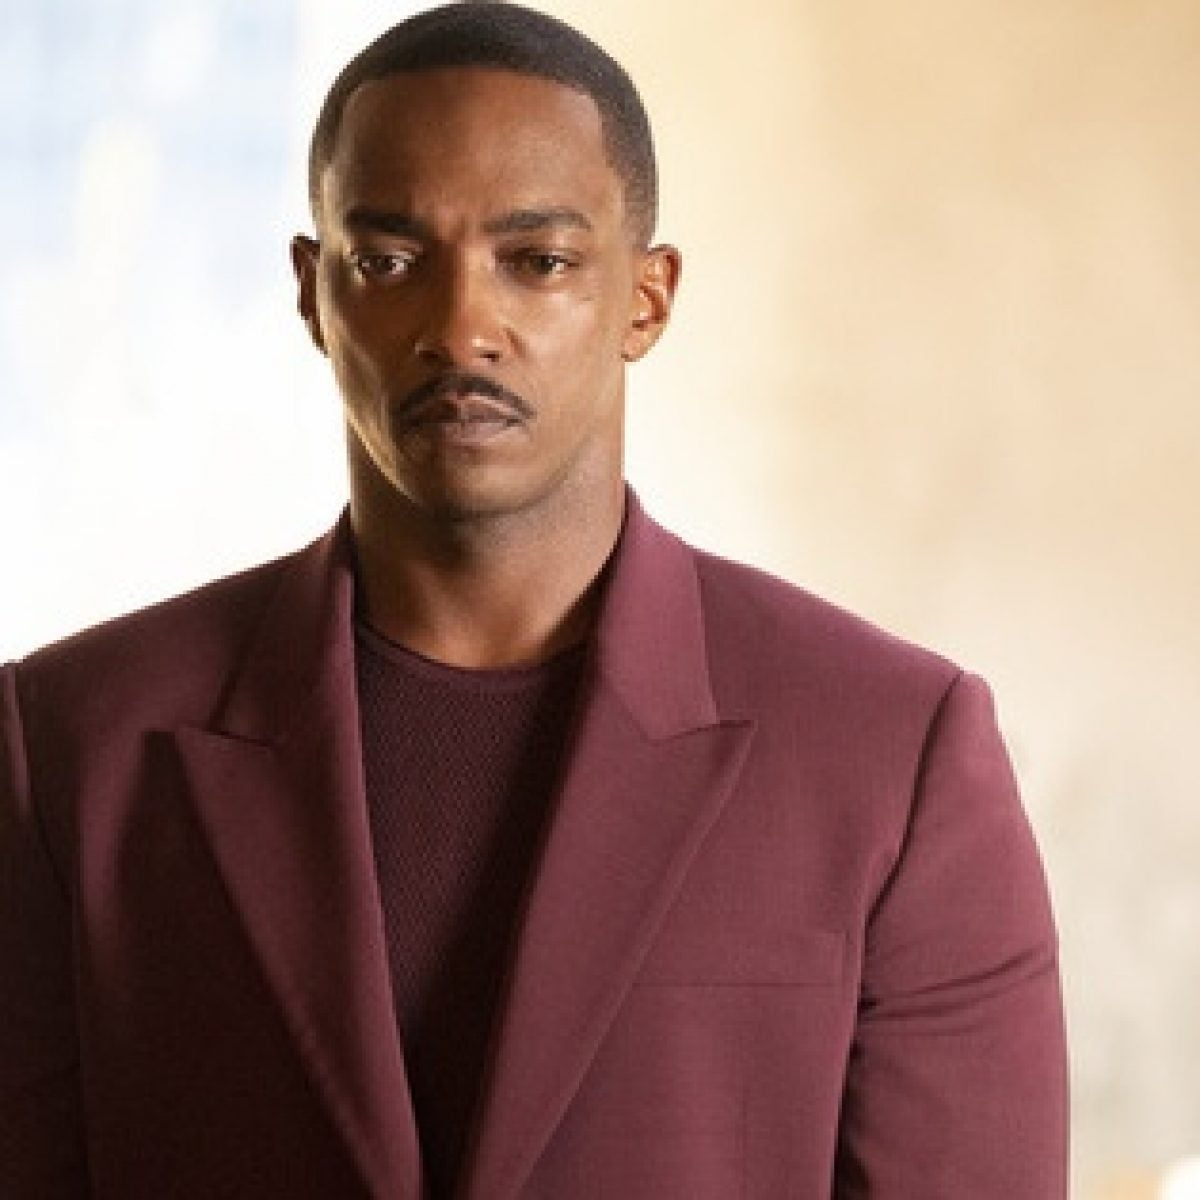 Anthony Mackie On How His Role In 'Solos' Put Life Into Perspective For Him